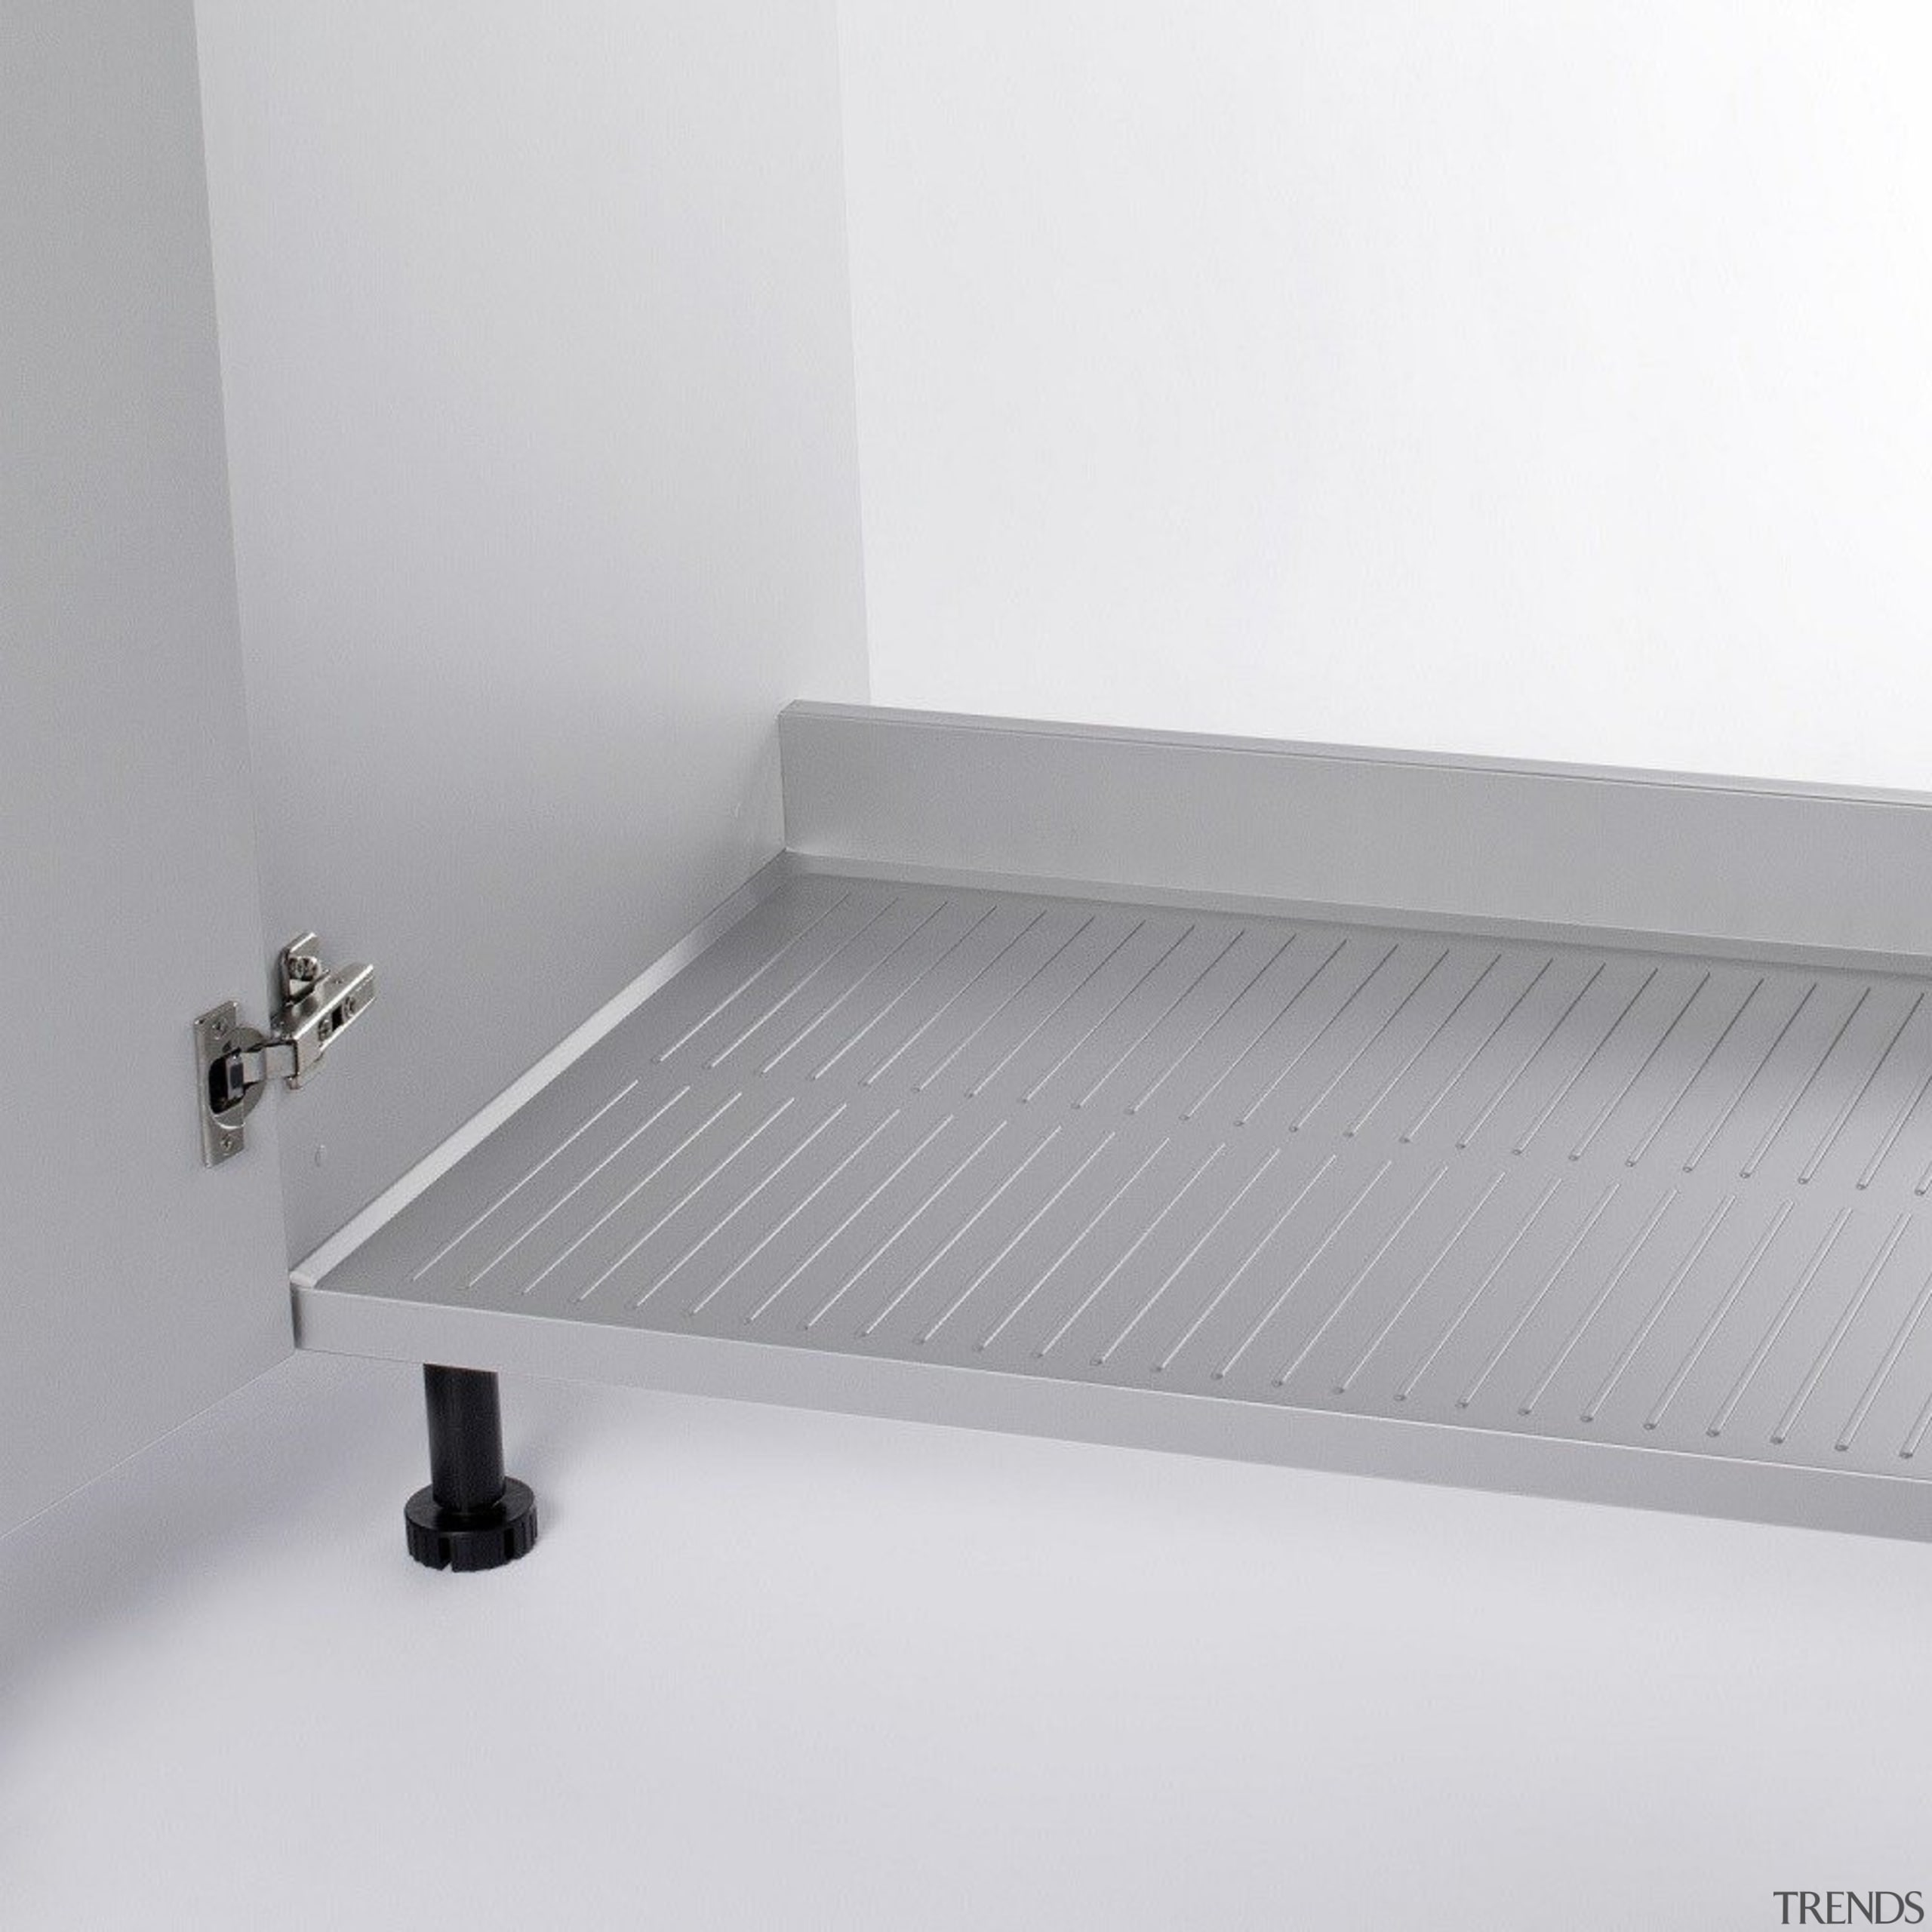 EURO ORVEL CABINET LINERS protect your cabinets under furniture, product, white